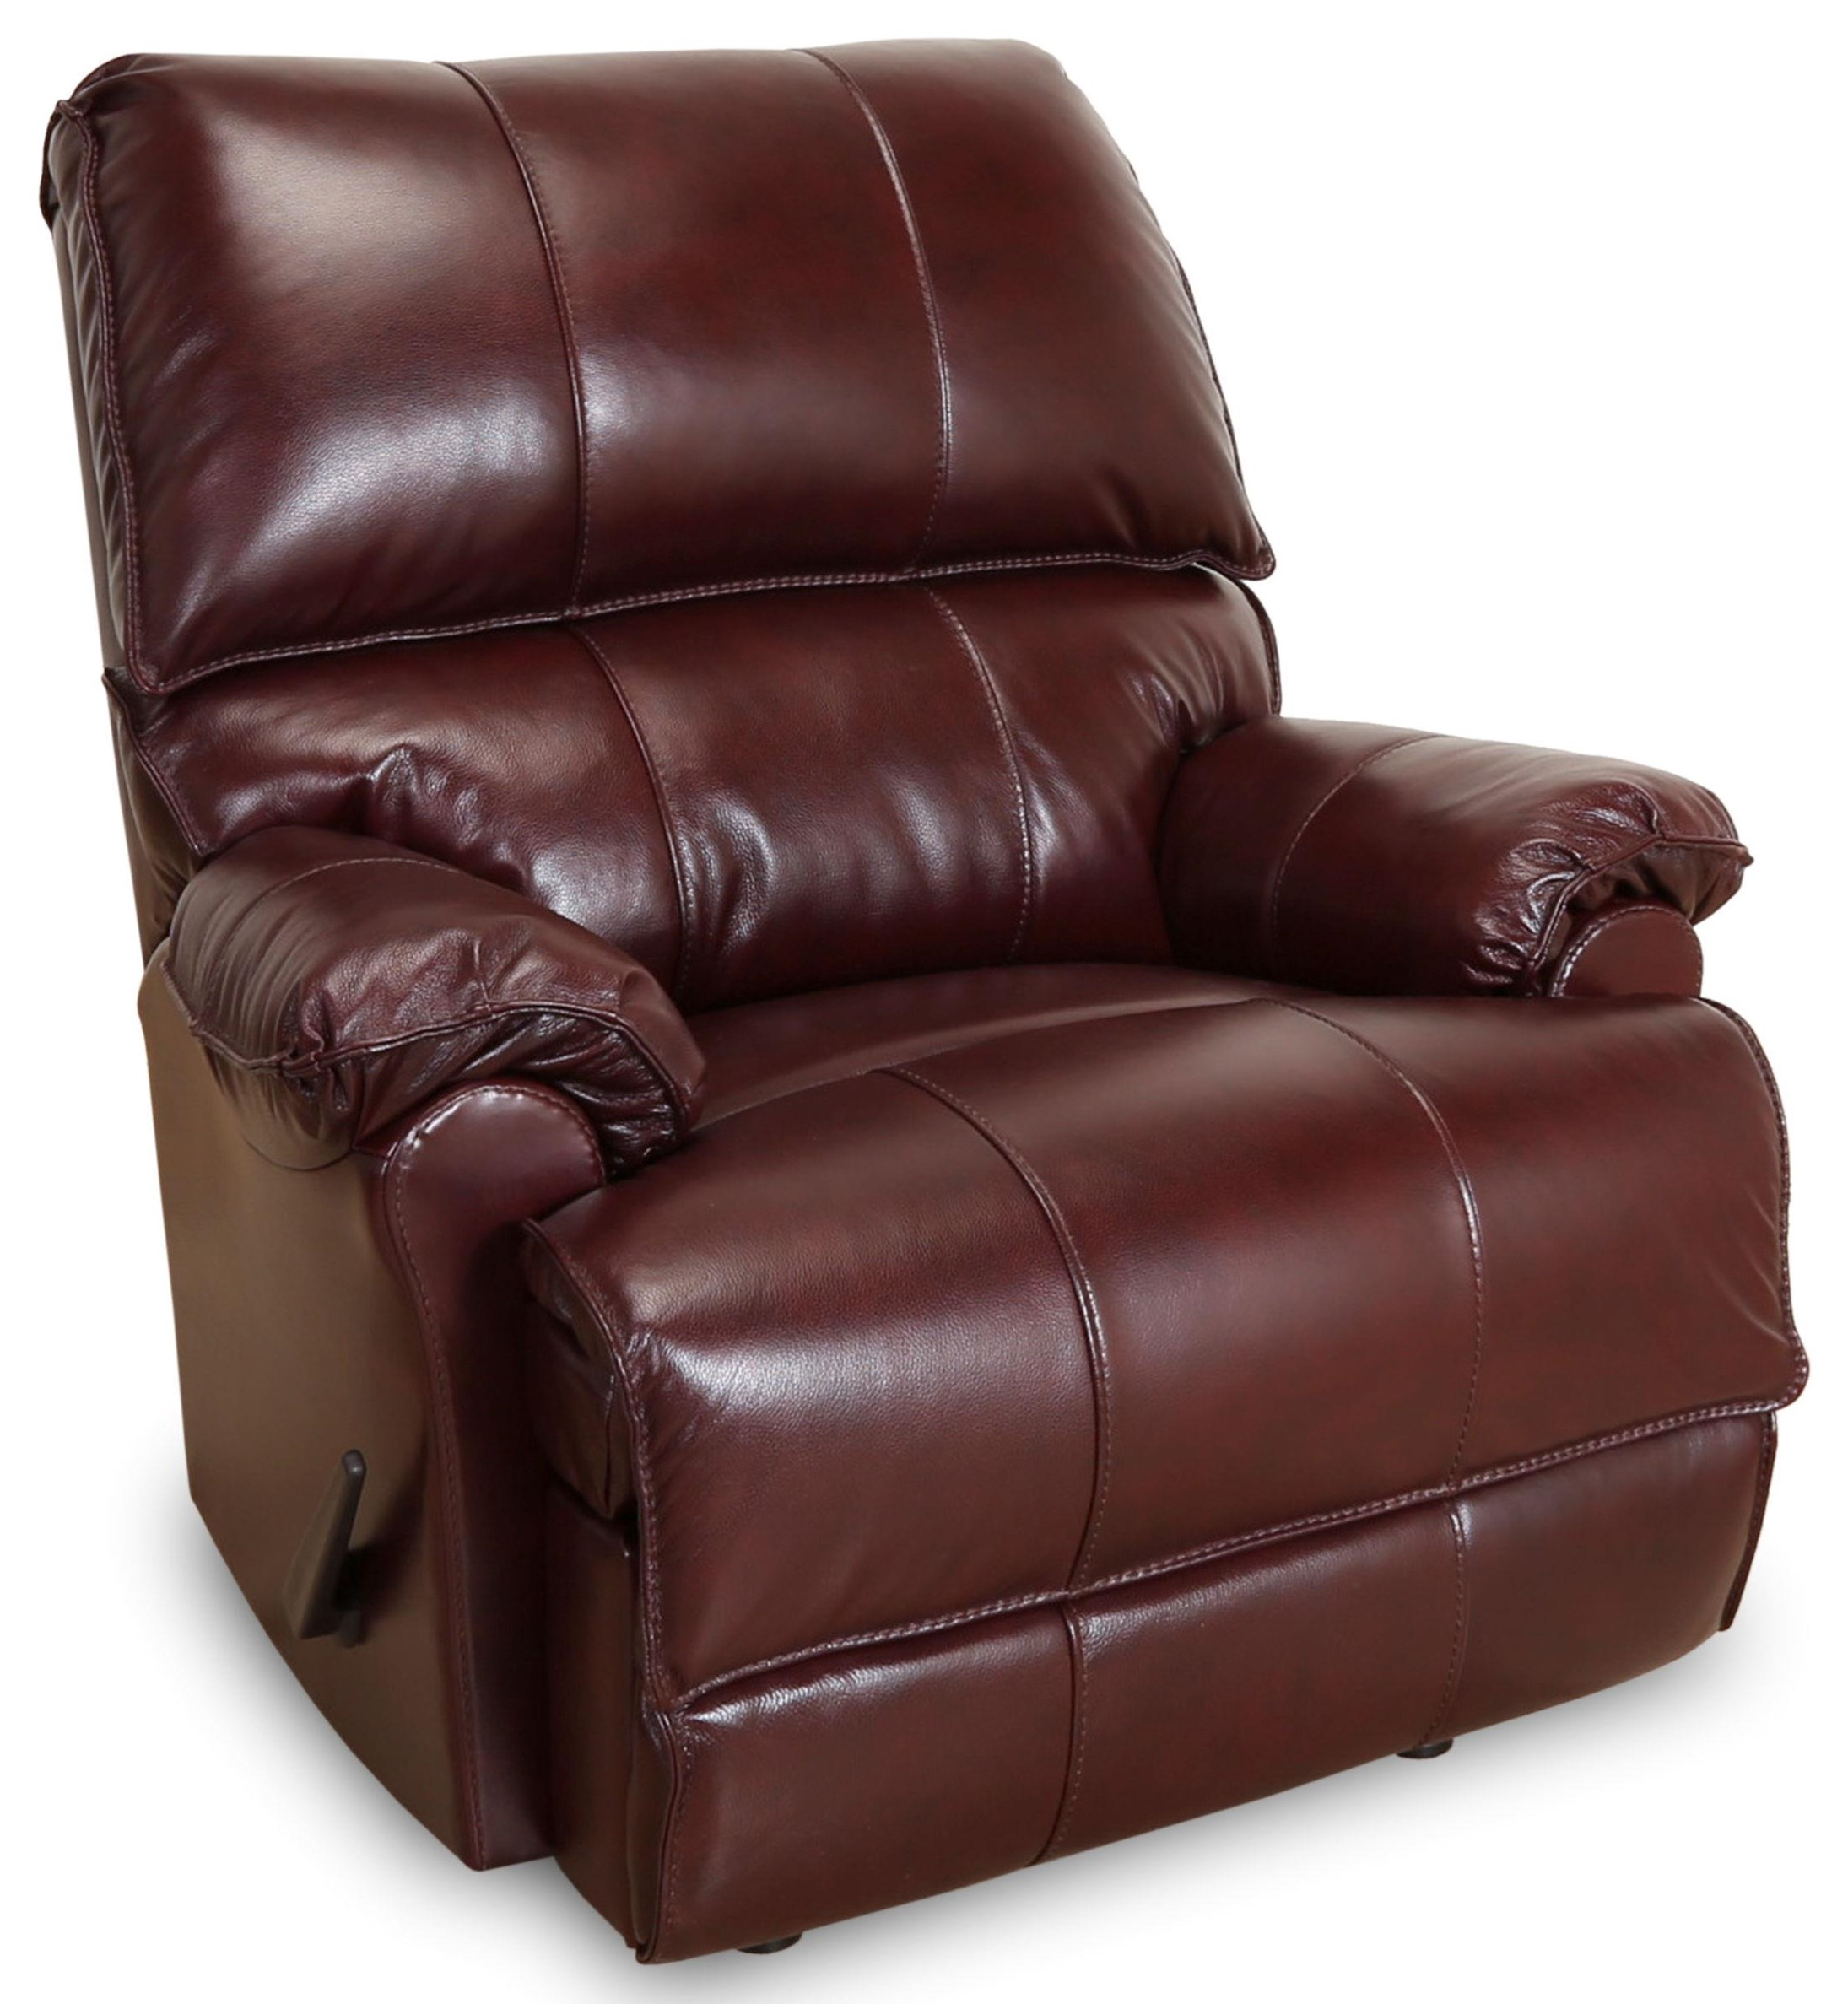 Swivel Rocker Recliner Chair Franklin Recliners Lucas Swivel Rocker Recliner By Franklin At Miskelly Furniture